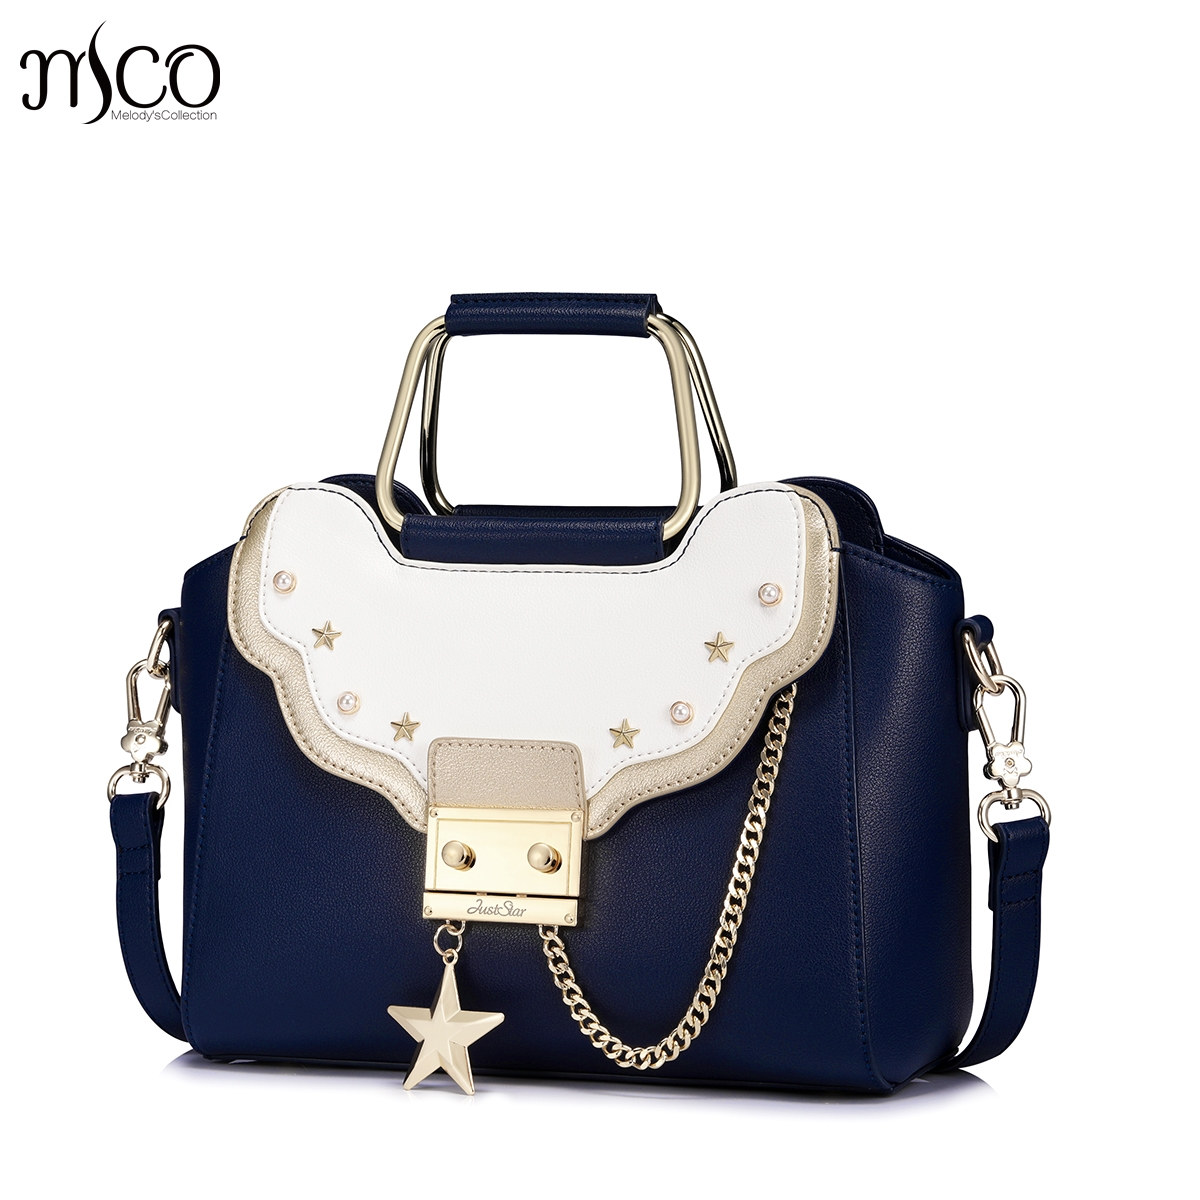 High Quality Brand Star Chains PU Leather Purse Crossbody Shoulder Women Bag Clutch Female Handbags Sac a Main Femme De Marque pu high quality leather women handbag famouse brand shoulder bags for women messenger bag ladies crossbody female sac a main